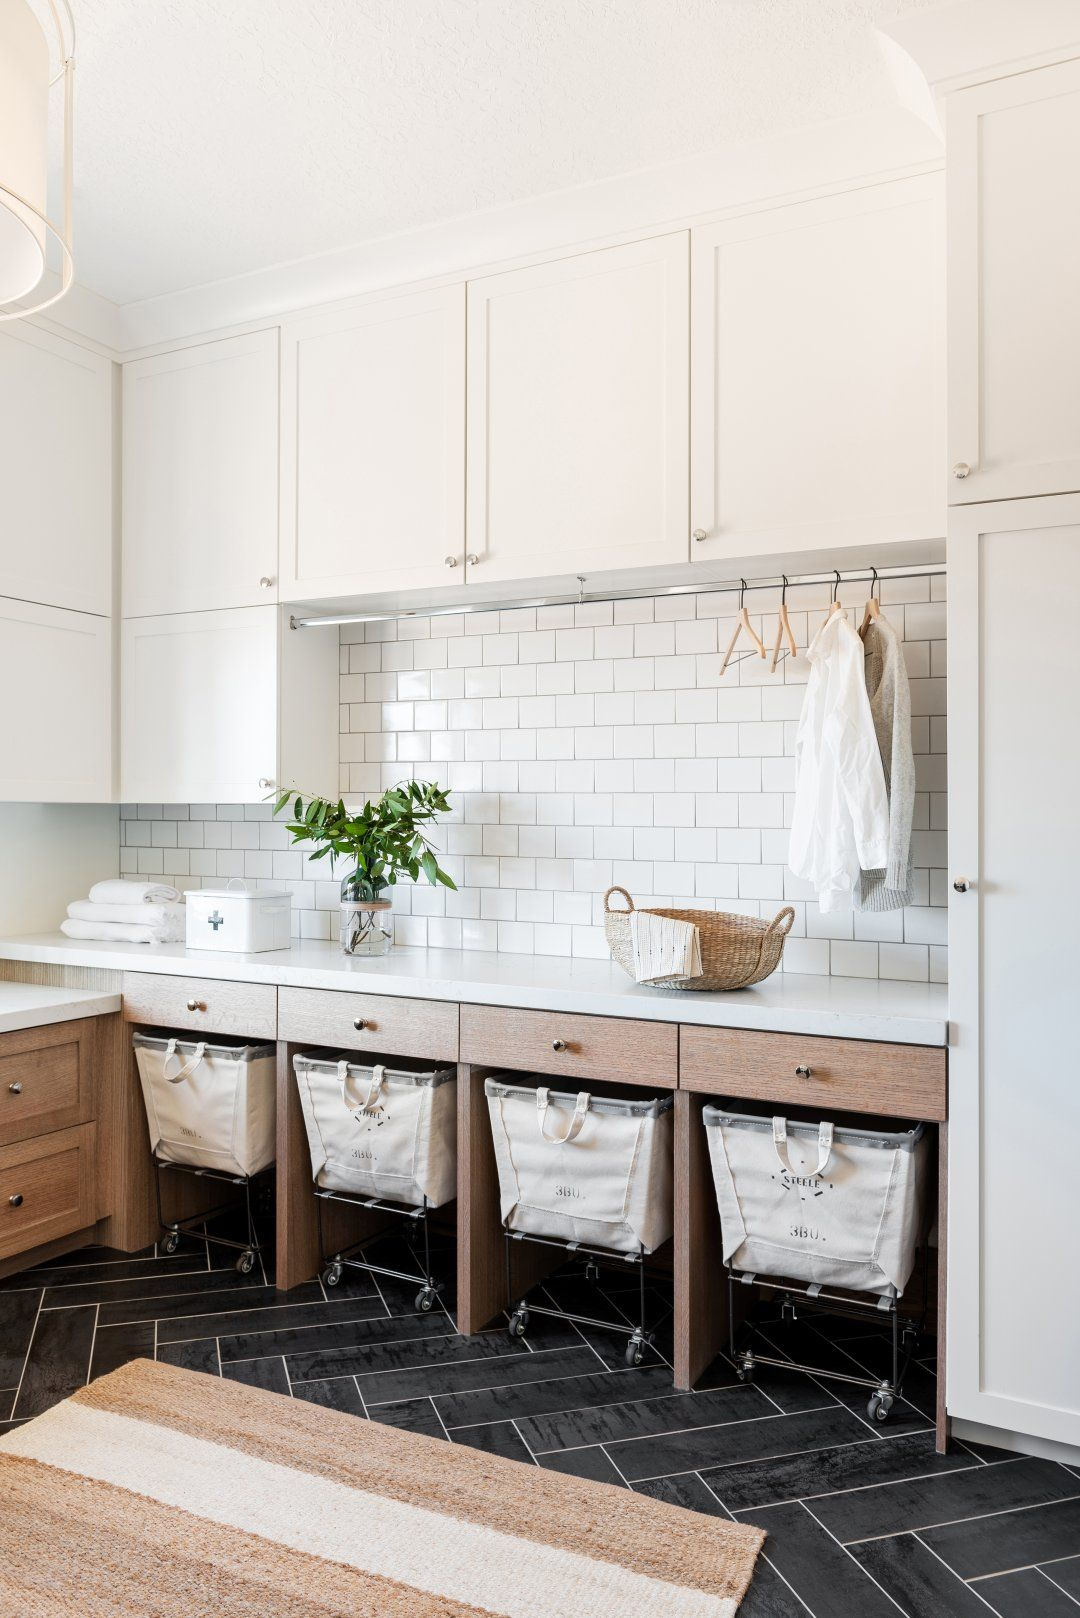 Photo of The Laundry Room of Our Dreams